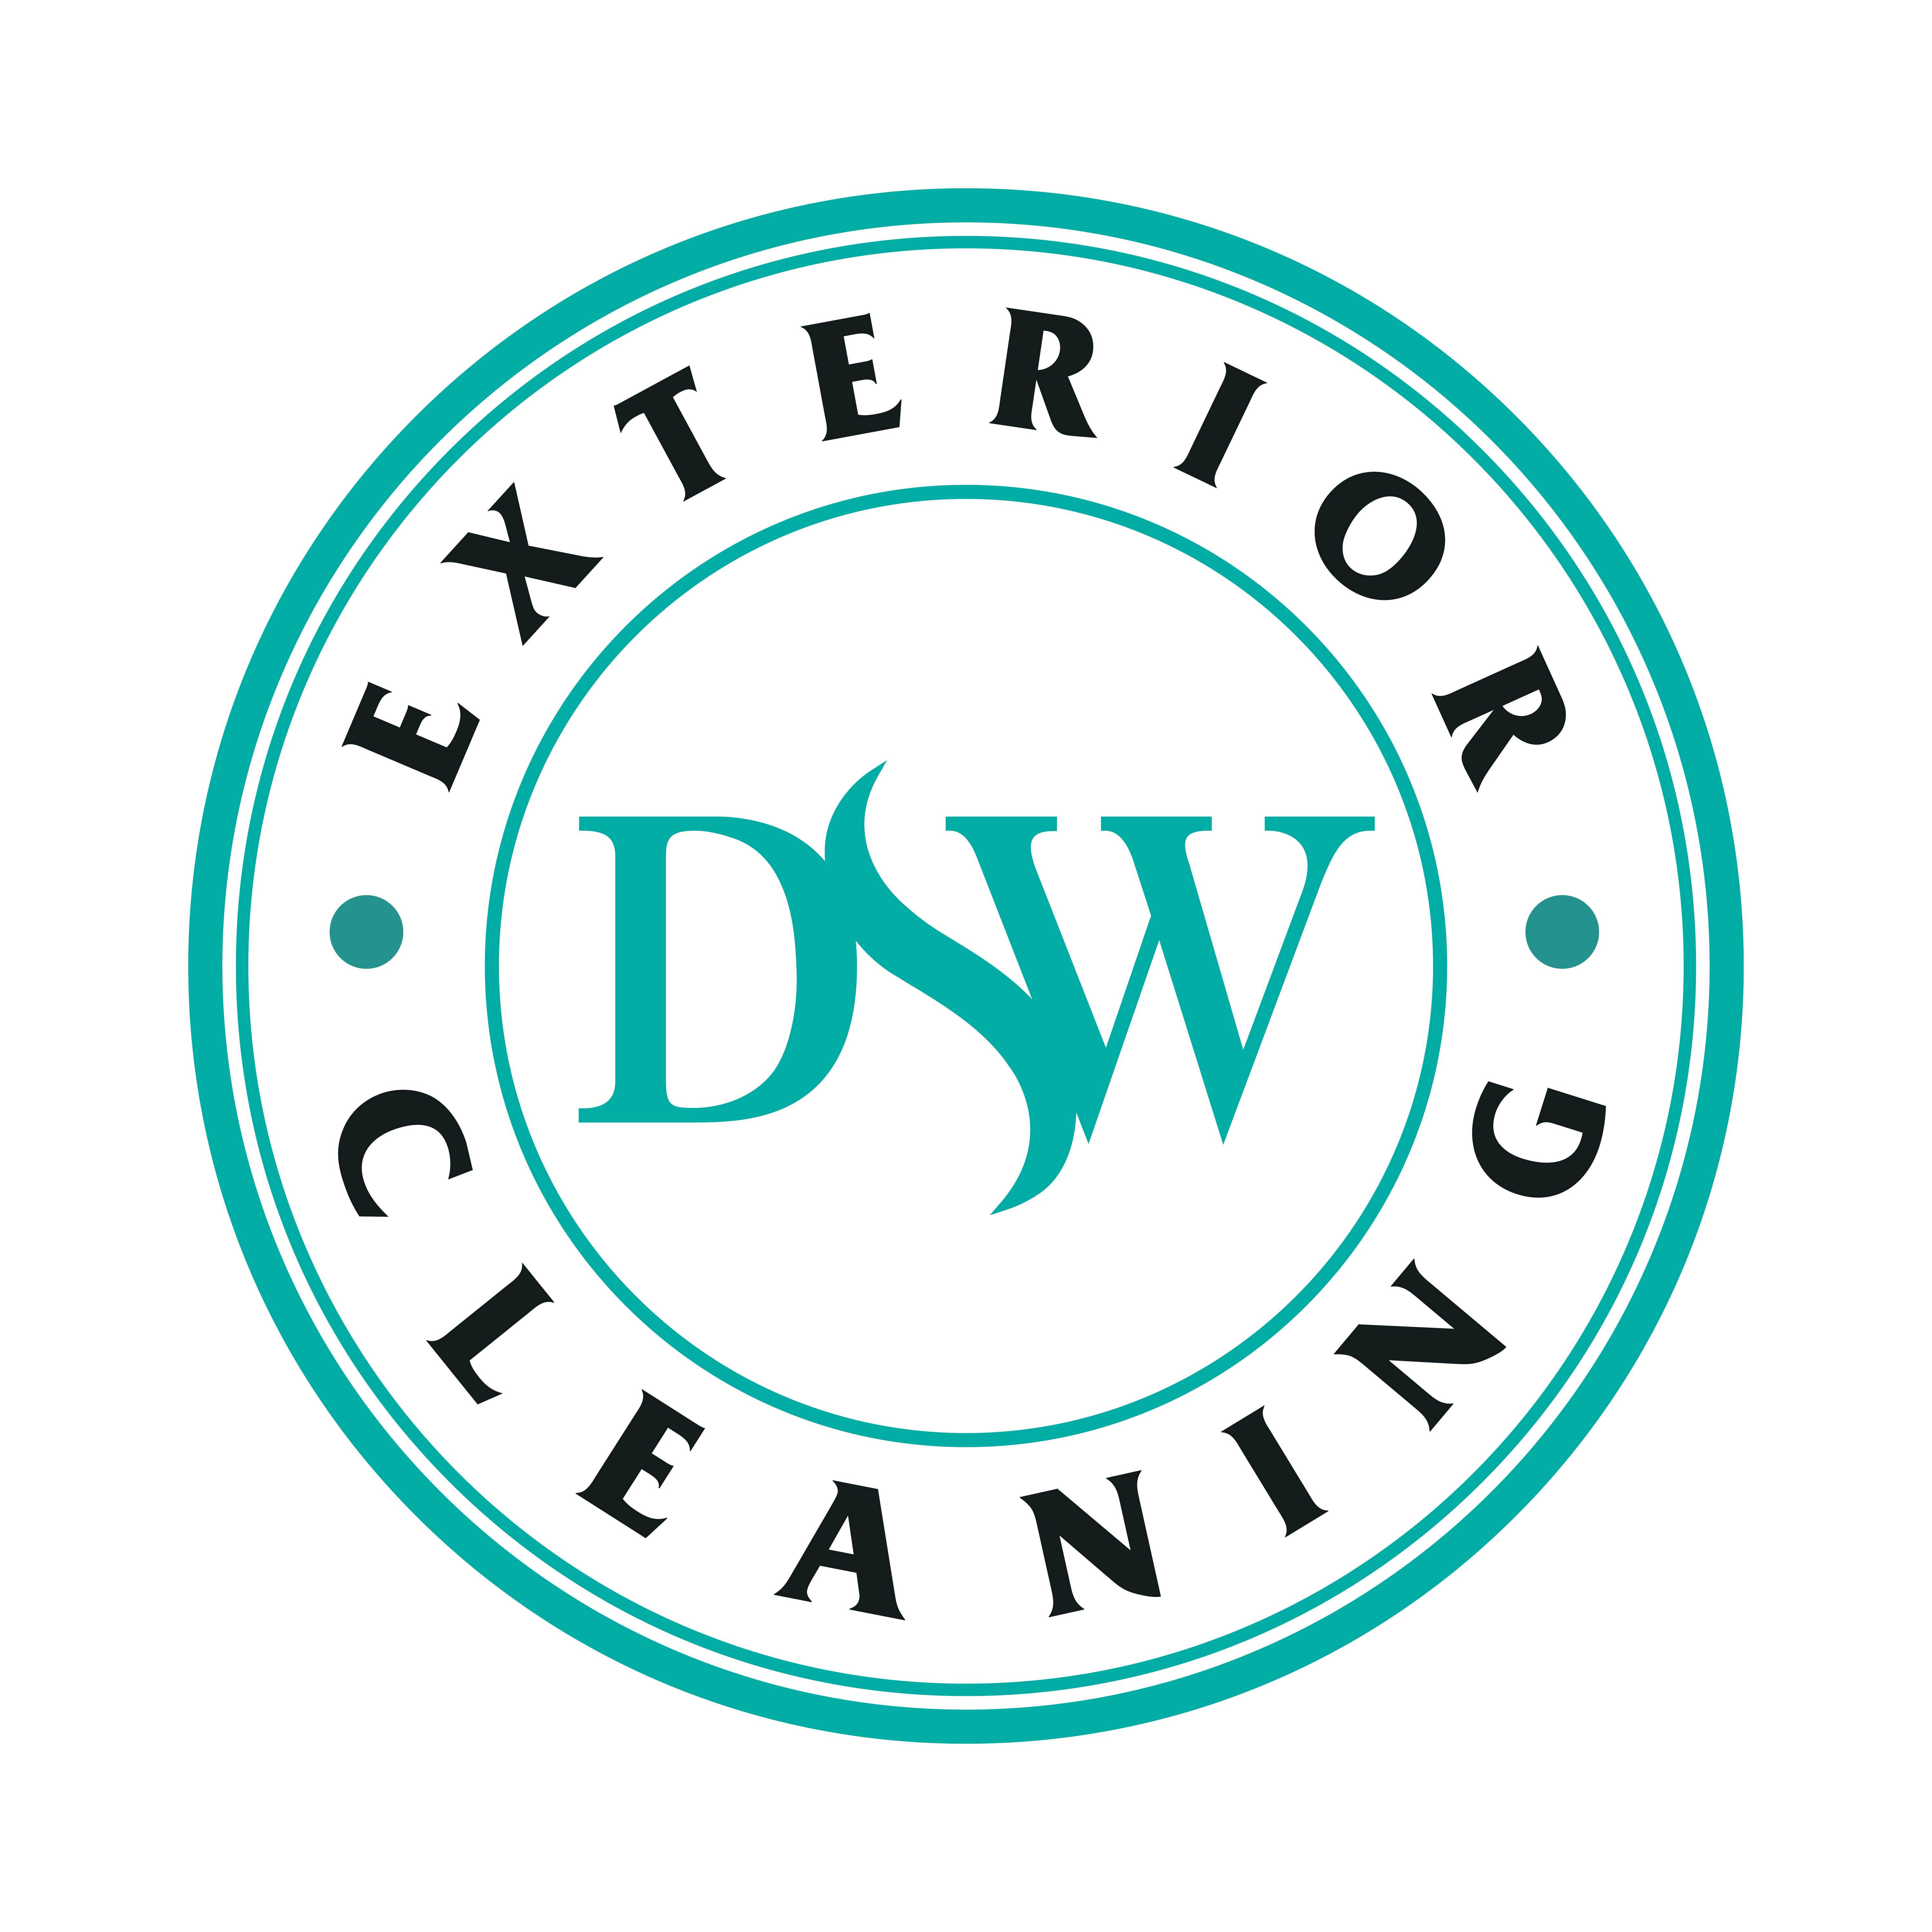 exterior cleaning near me dswcleaning.com